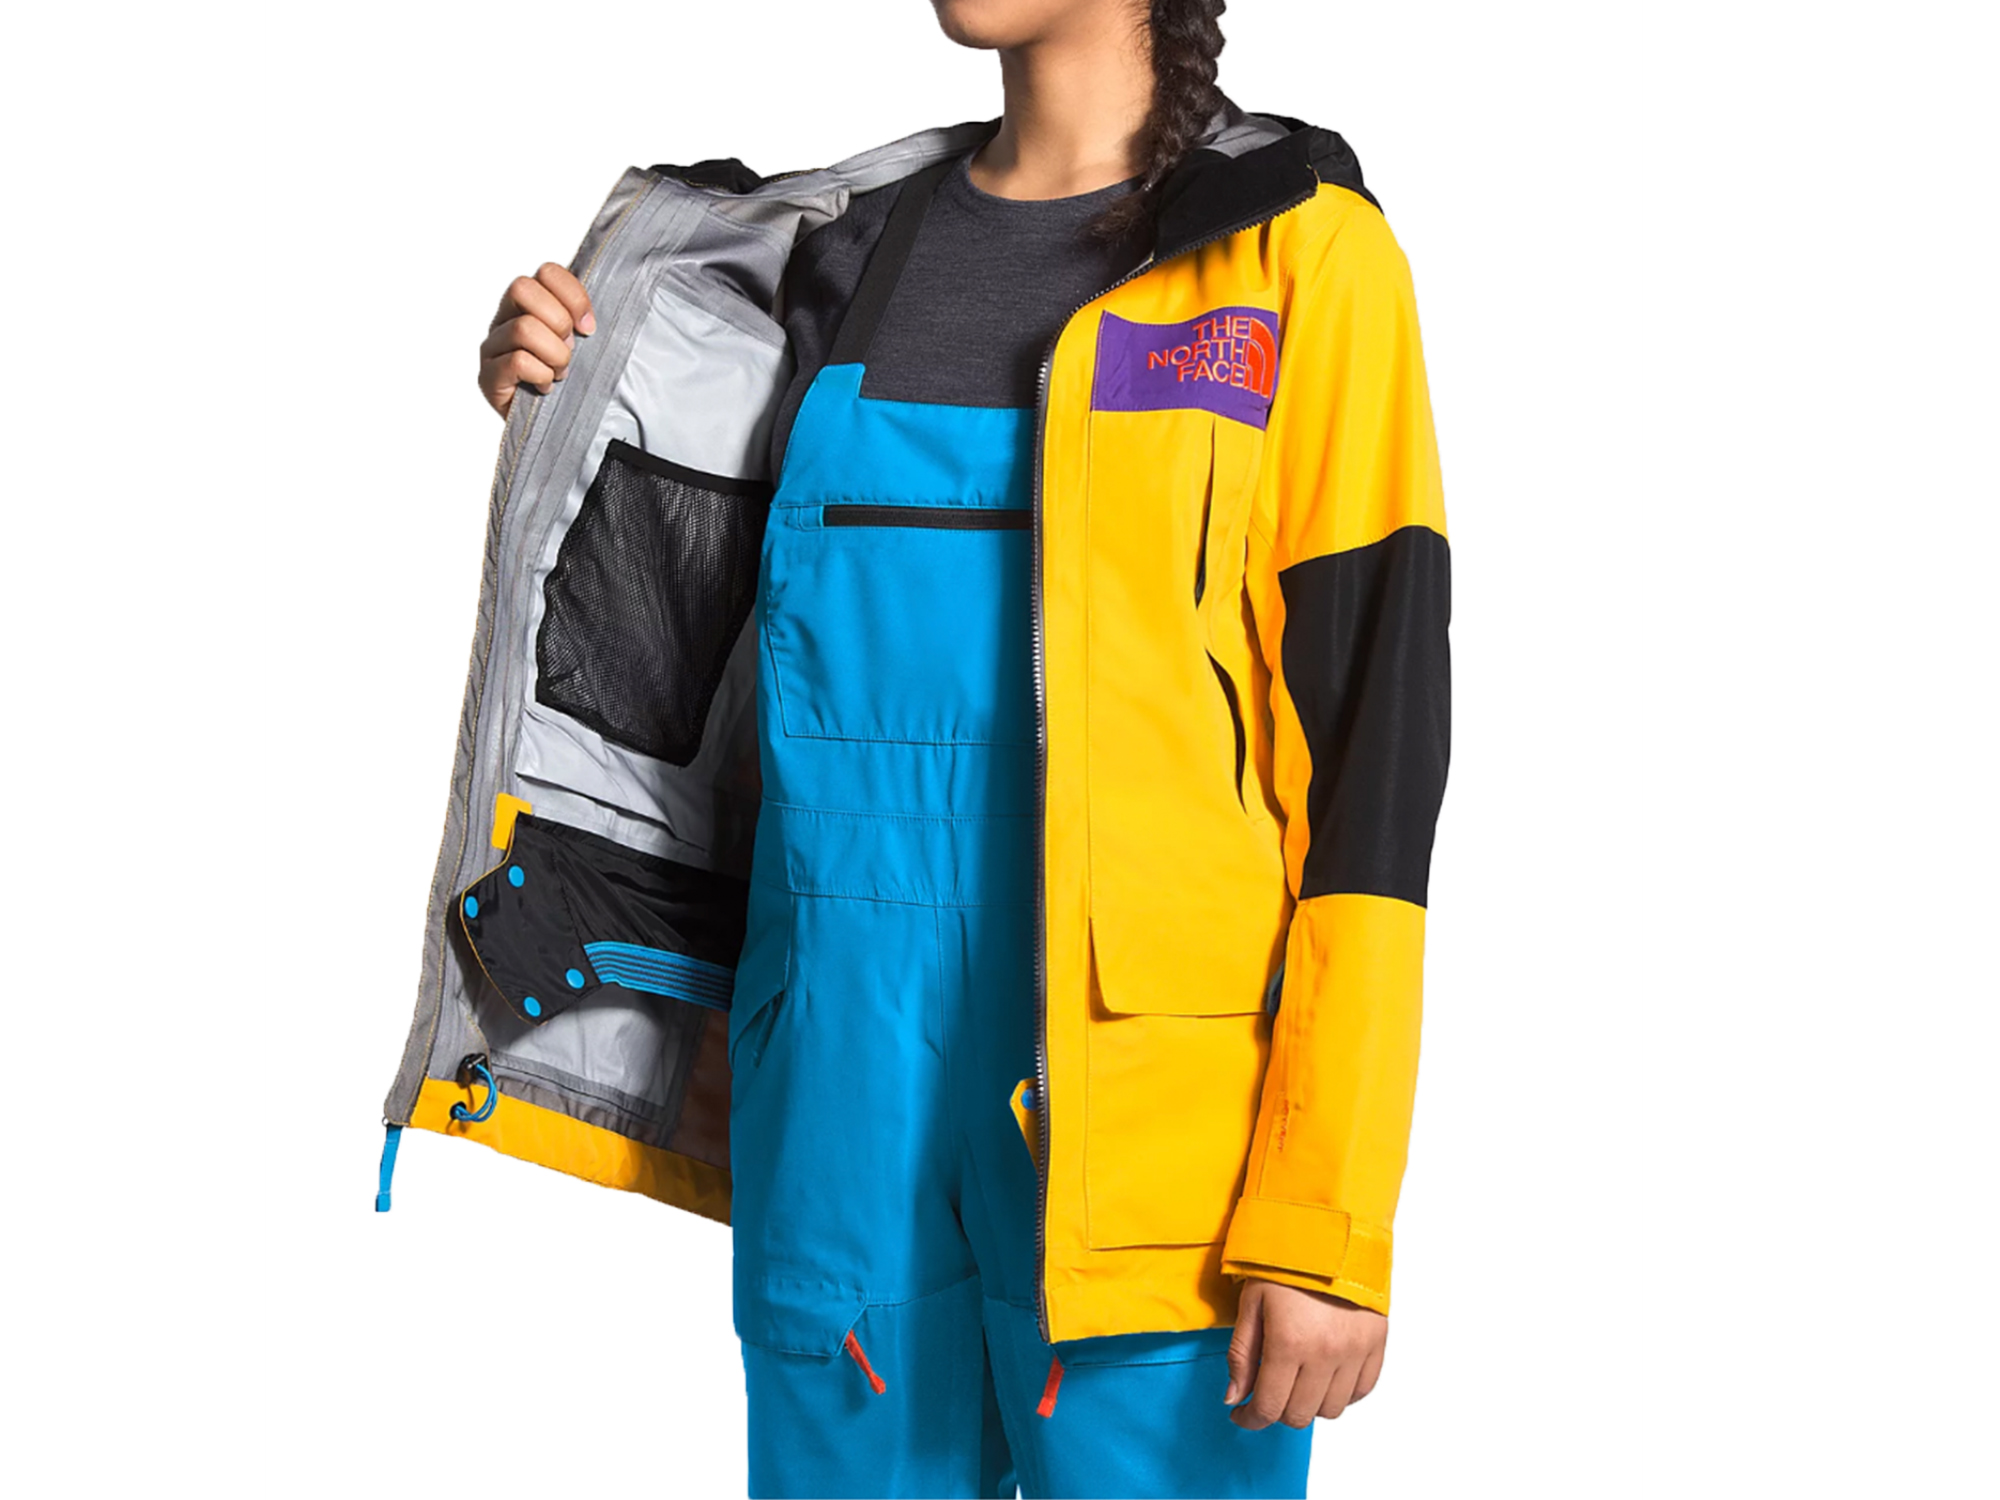 the north face team kit bib